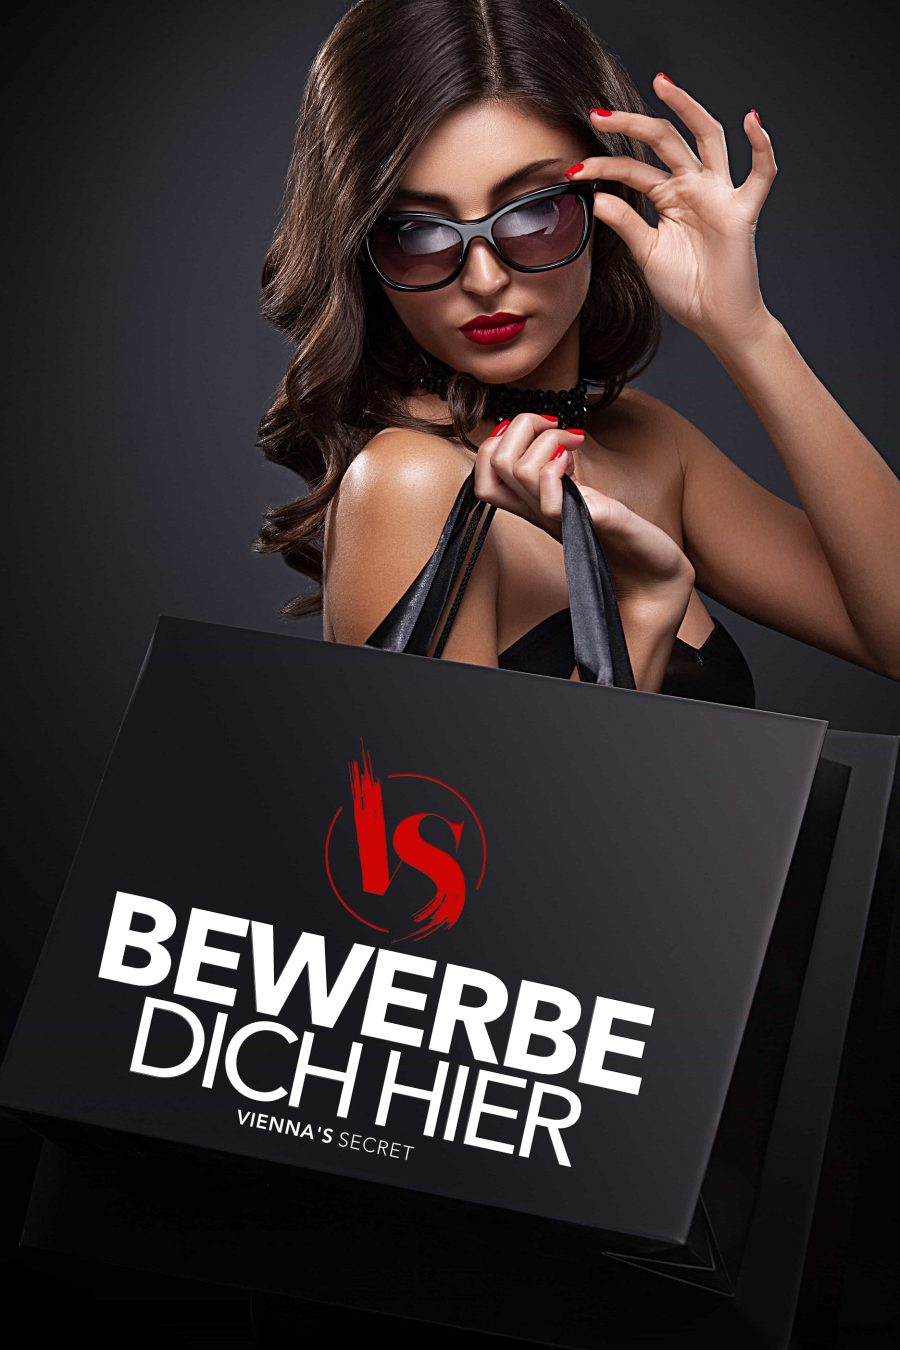 bewerbe dich hier